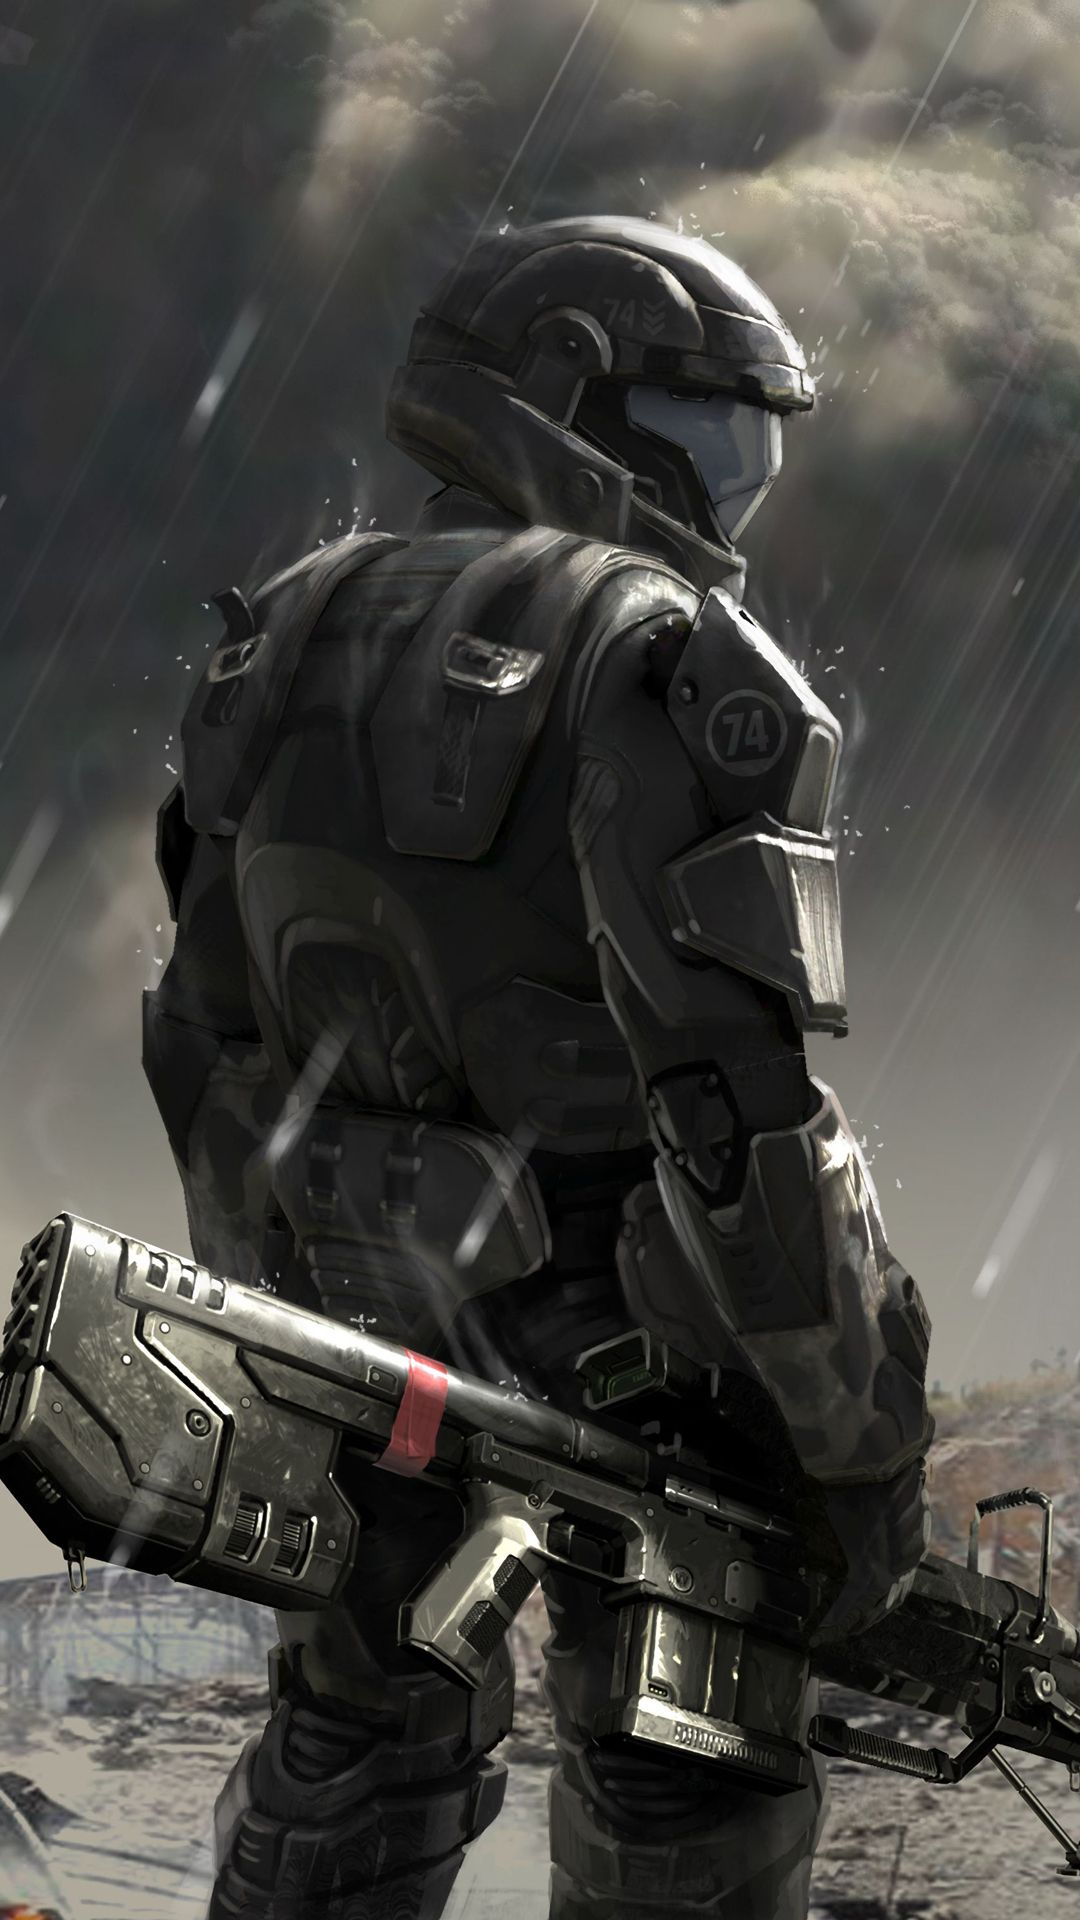 1080x1920 Soldier concept Halo 4 - Best htc one wallpapers